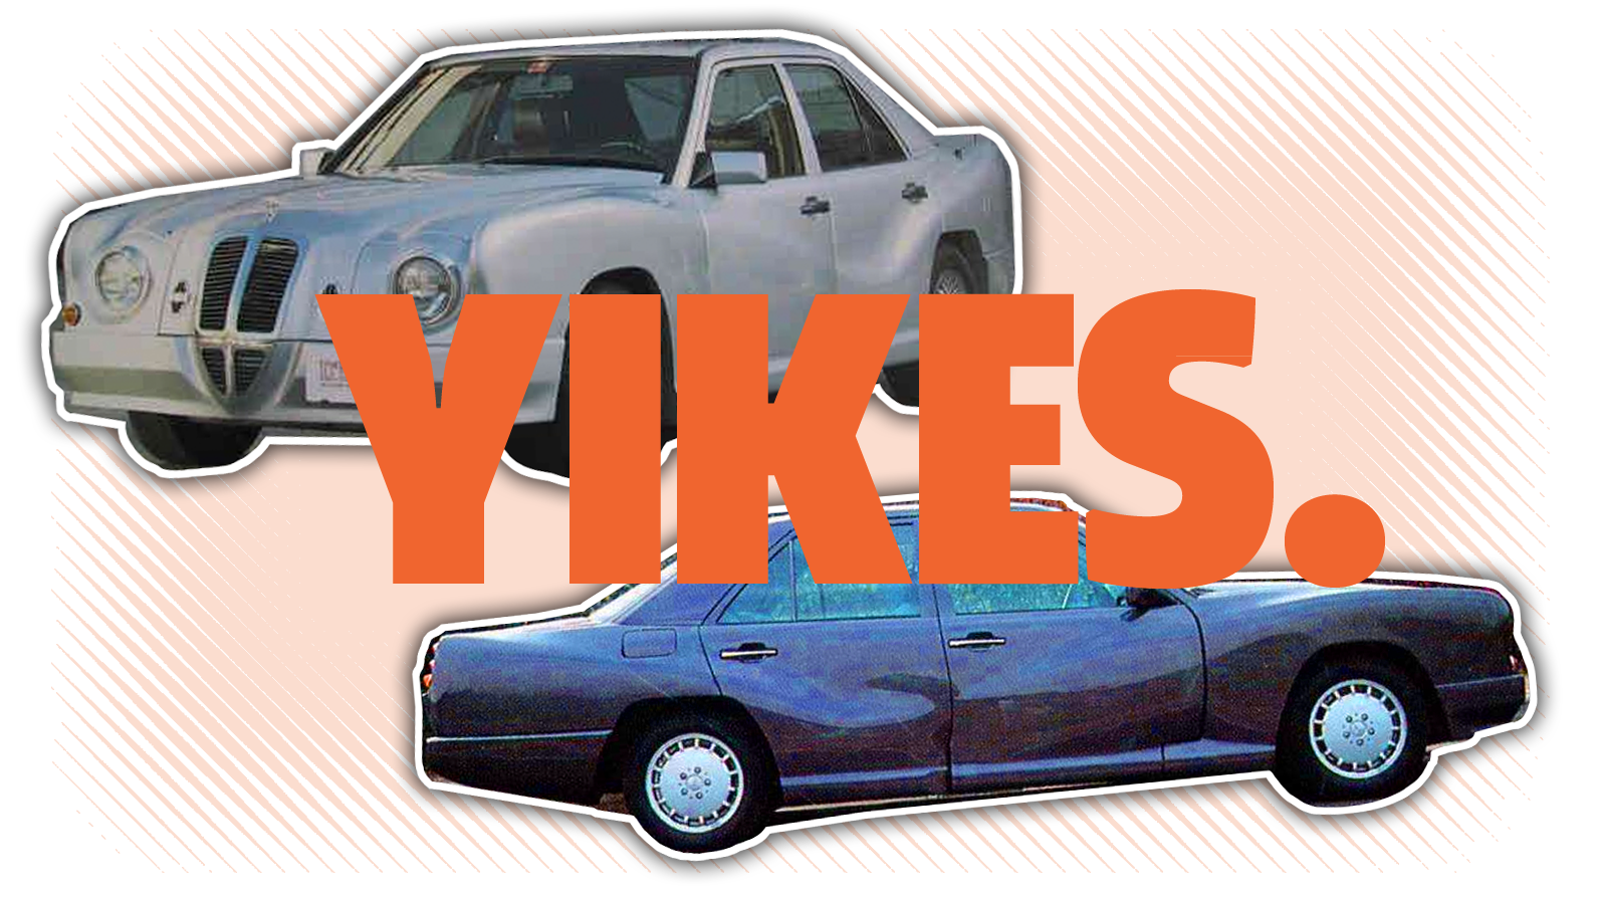 Behold, A Car So Ugly It Looks Like It's Already Been Wrecked